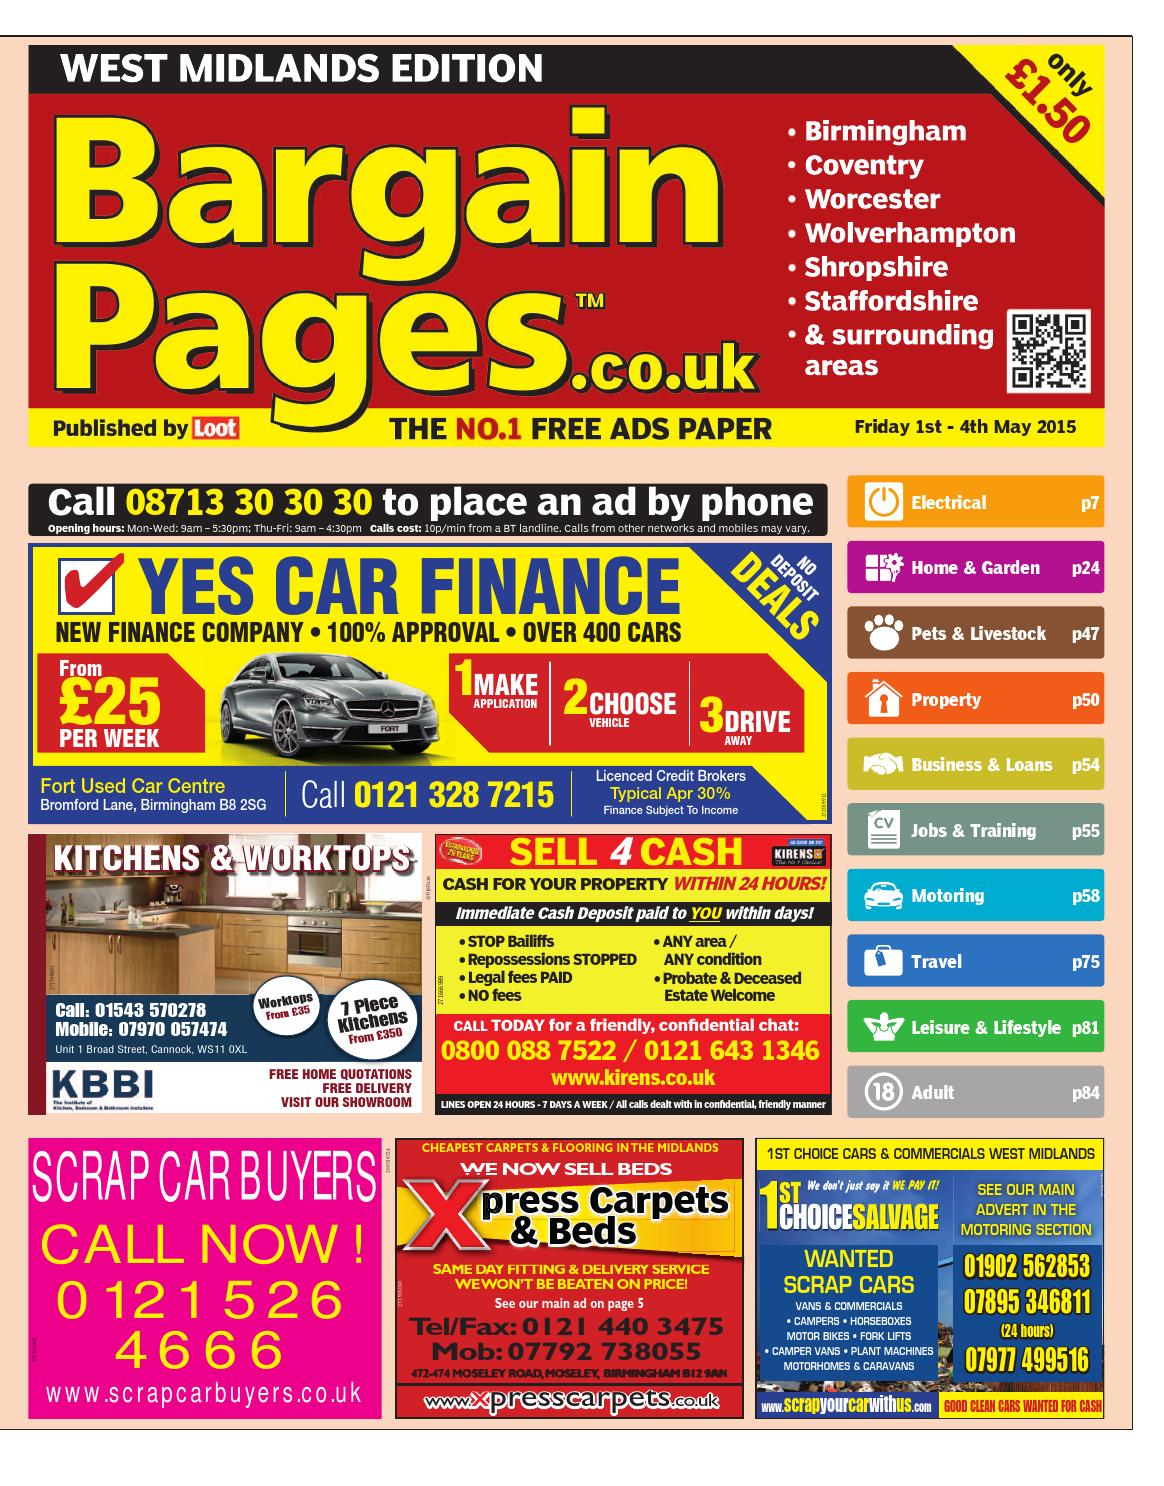 Bargain Pages West Midlands 1st May 2015 By Loot Issuu